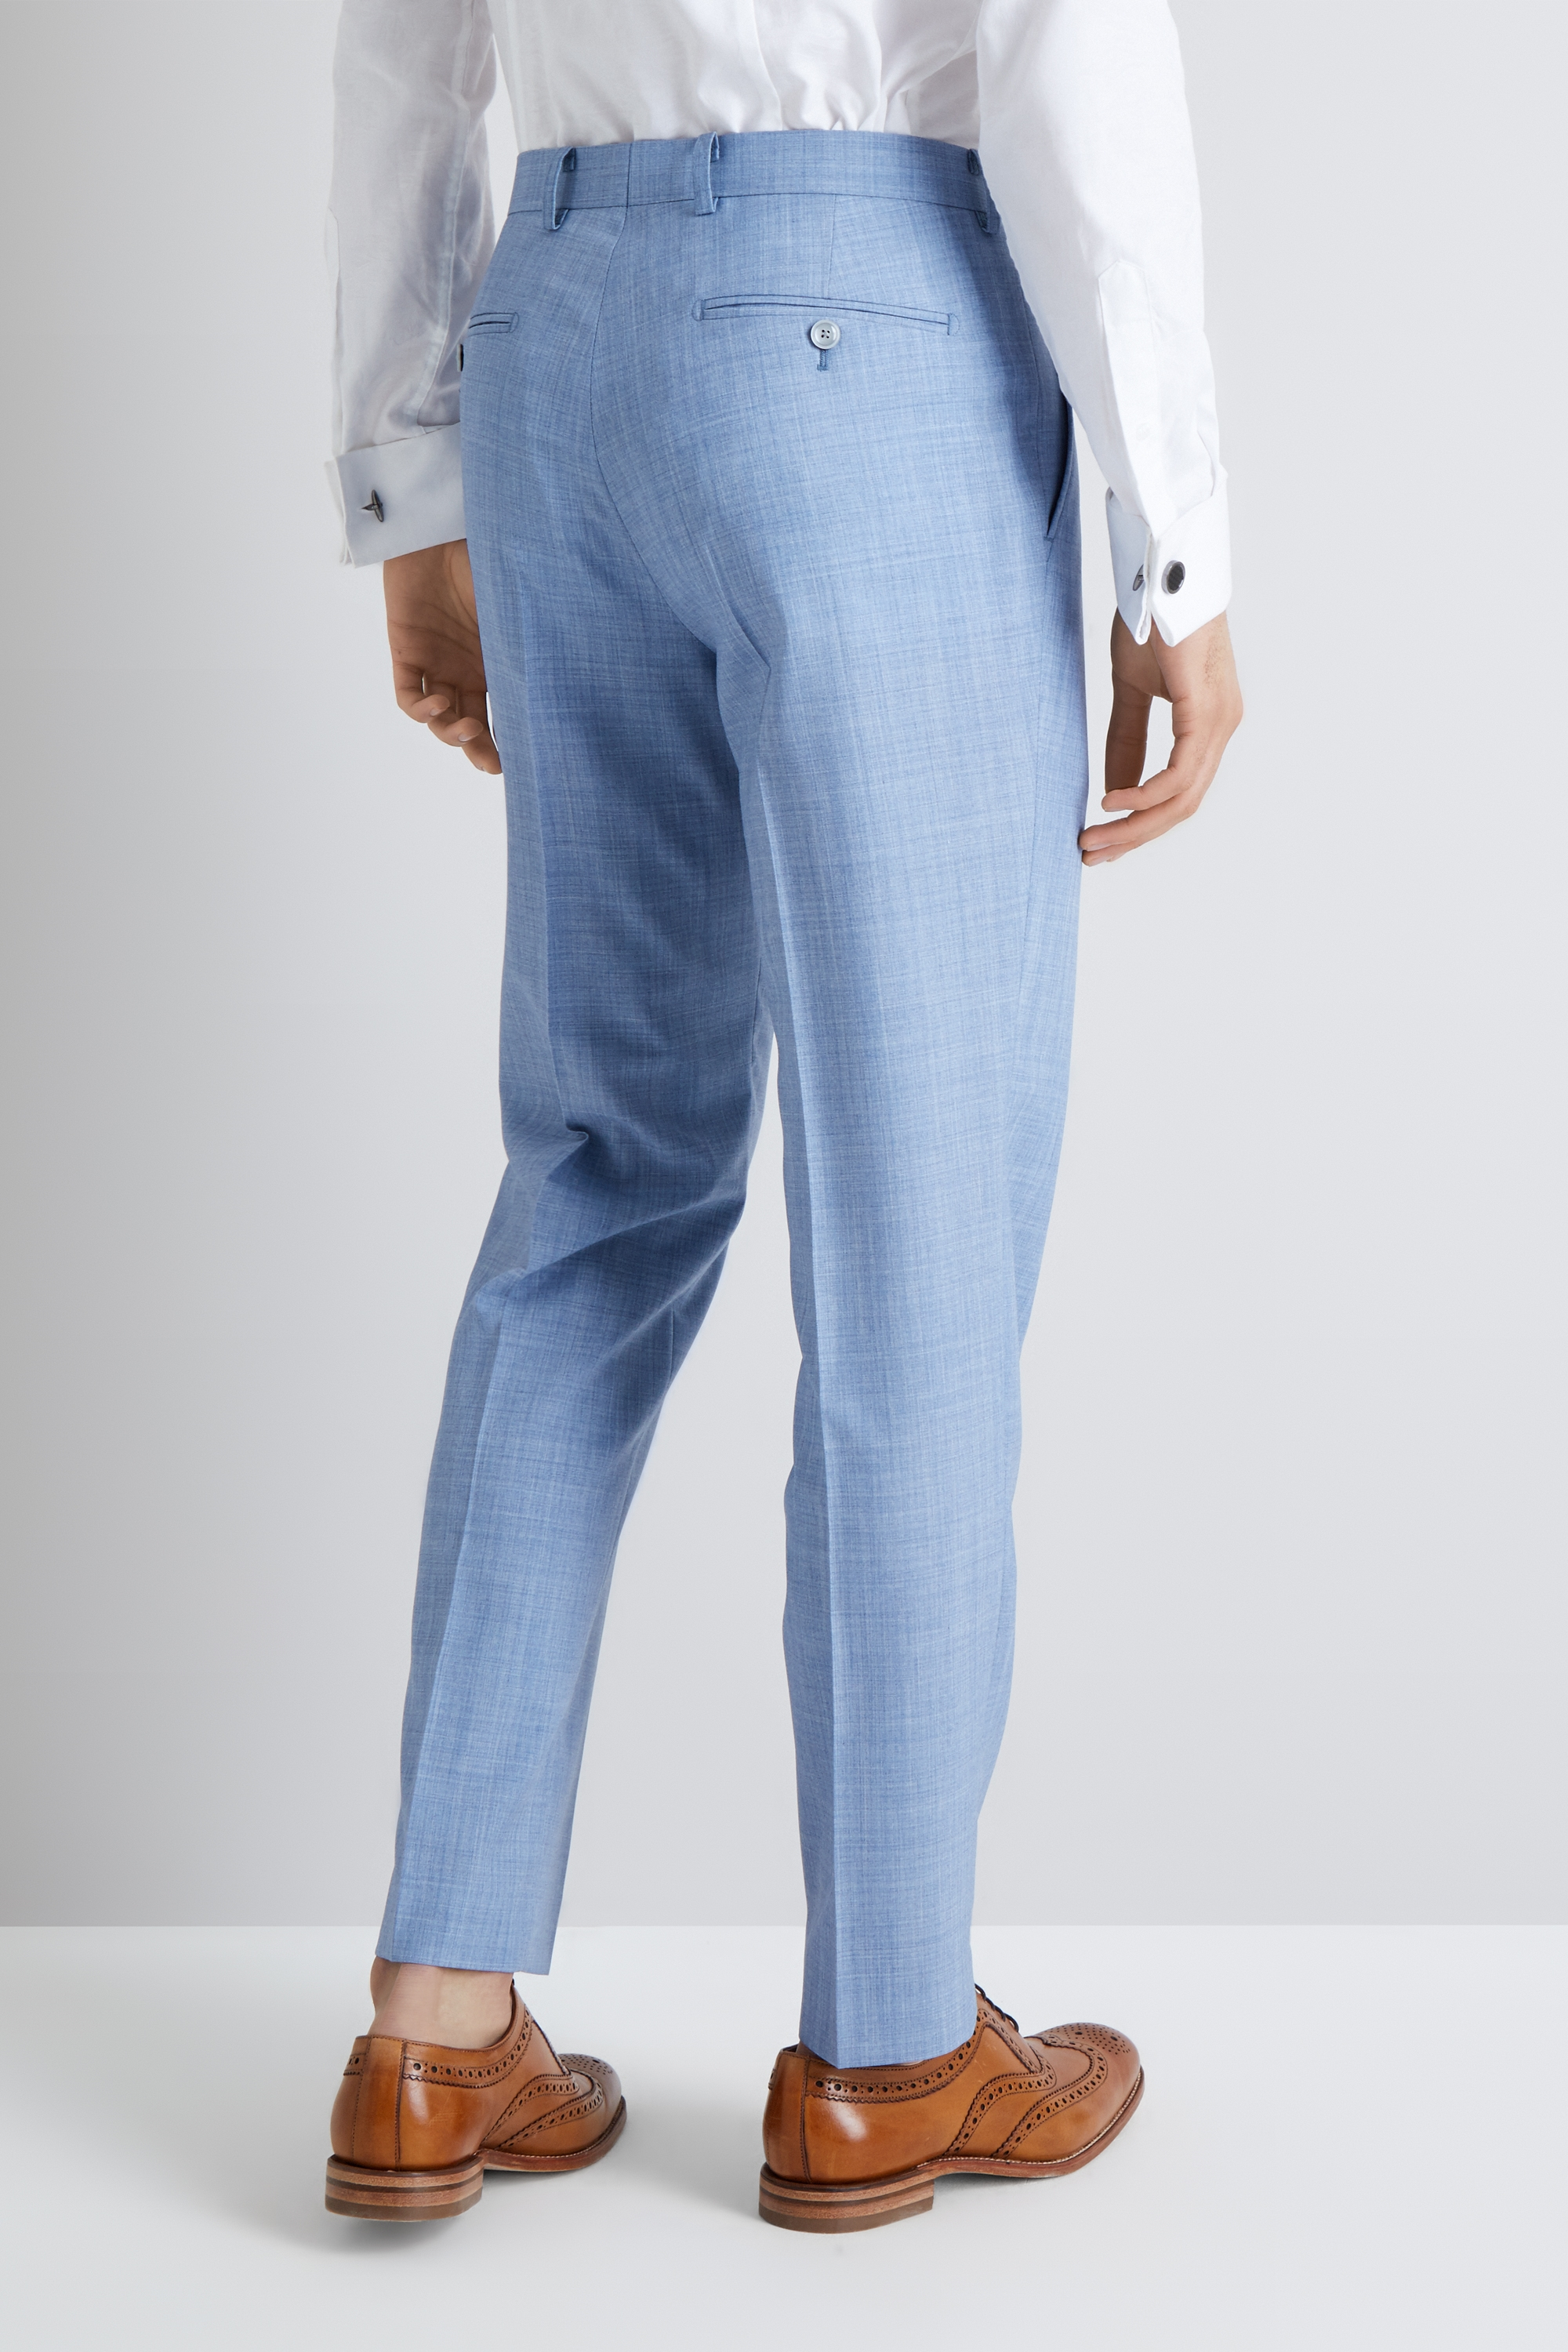 9b5e7c929ce French Connection Slim Fit Sky Blue Marl Trousers. £90£20